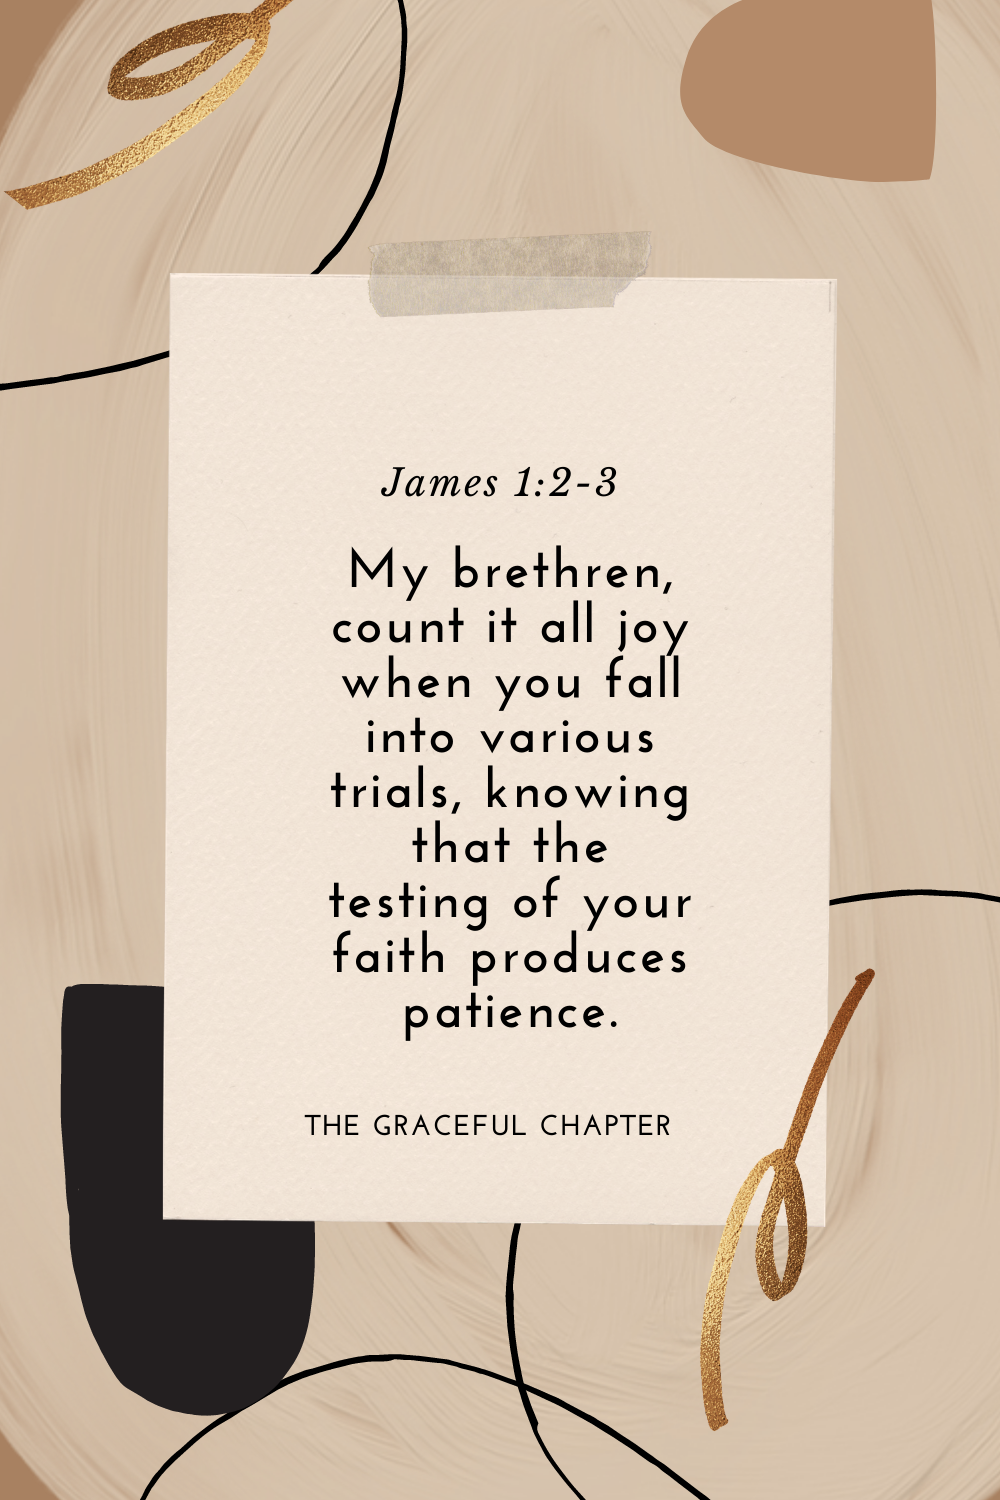 My brethren, count it all joy when you fall into various trials, knowing that the testing of your faith produces patience. James 1:2-3